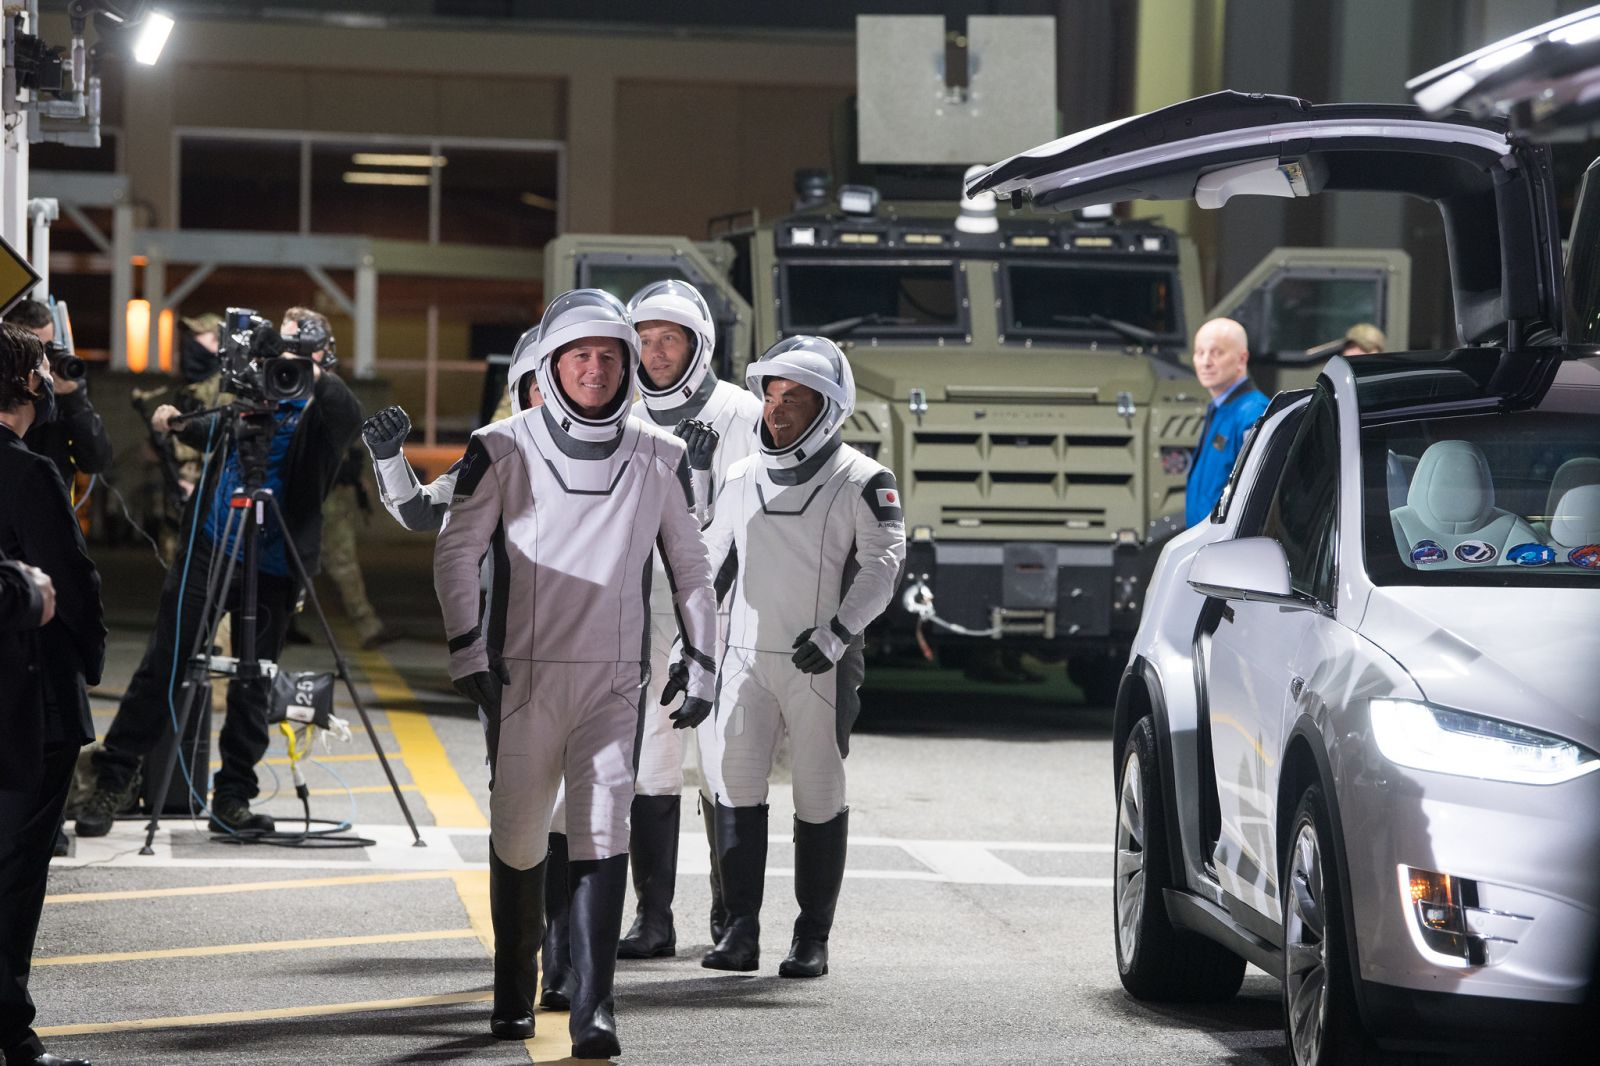 The Crew-2 astronauts board two Tesla Model X electric vehicles for their trip to the launch pad. Credit: NASA